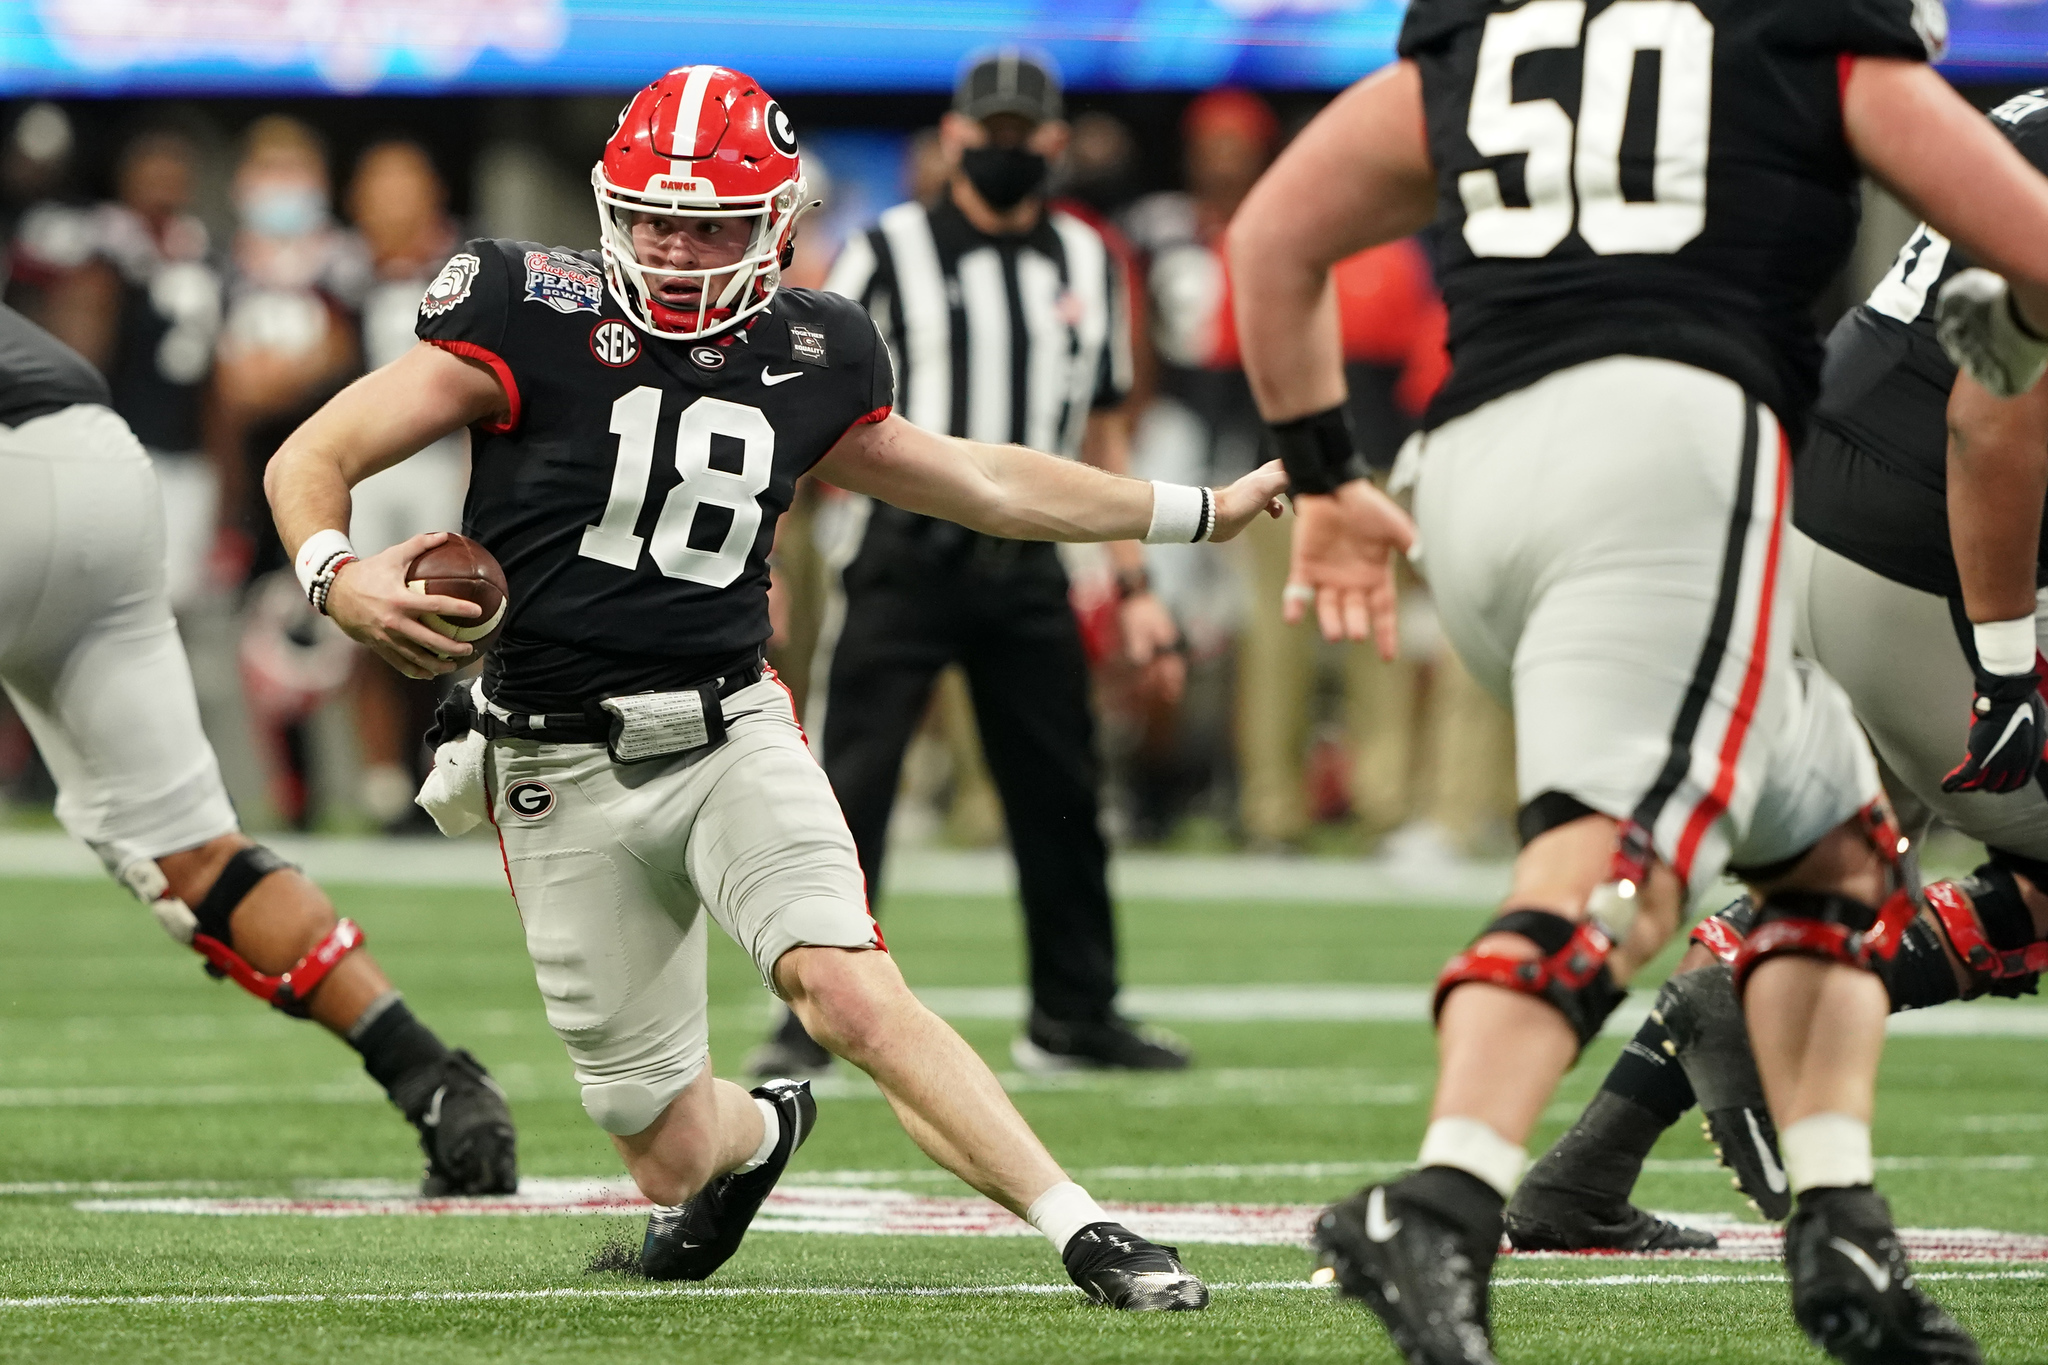 JT Daniels #18 of the Georgia Bulldogs runs the ball during the 2020 Chick-fil-A Peach Bowl NCAA football game between the Georgia Bulldogs and Cincinnati Bearcats, Jan. 1, 2021, in Atlanta. (Jason Parkhurst via Abell Images for the Chick-fil-A Peach Bowl)